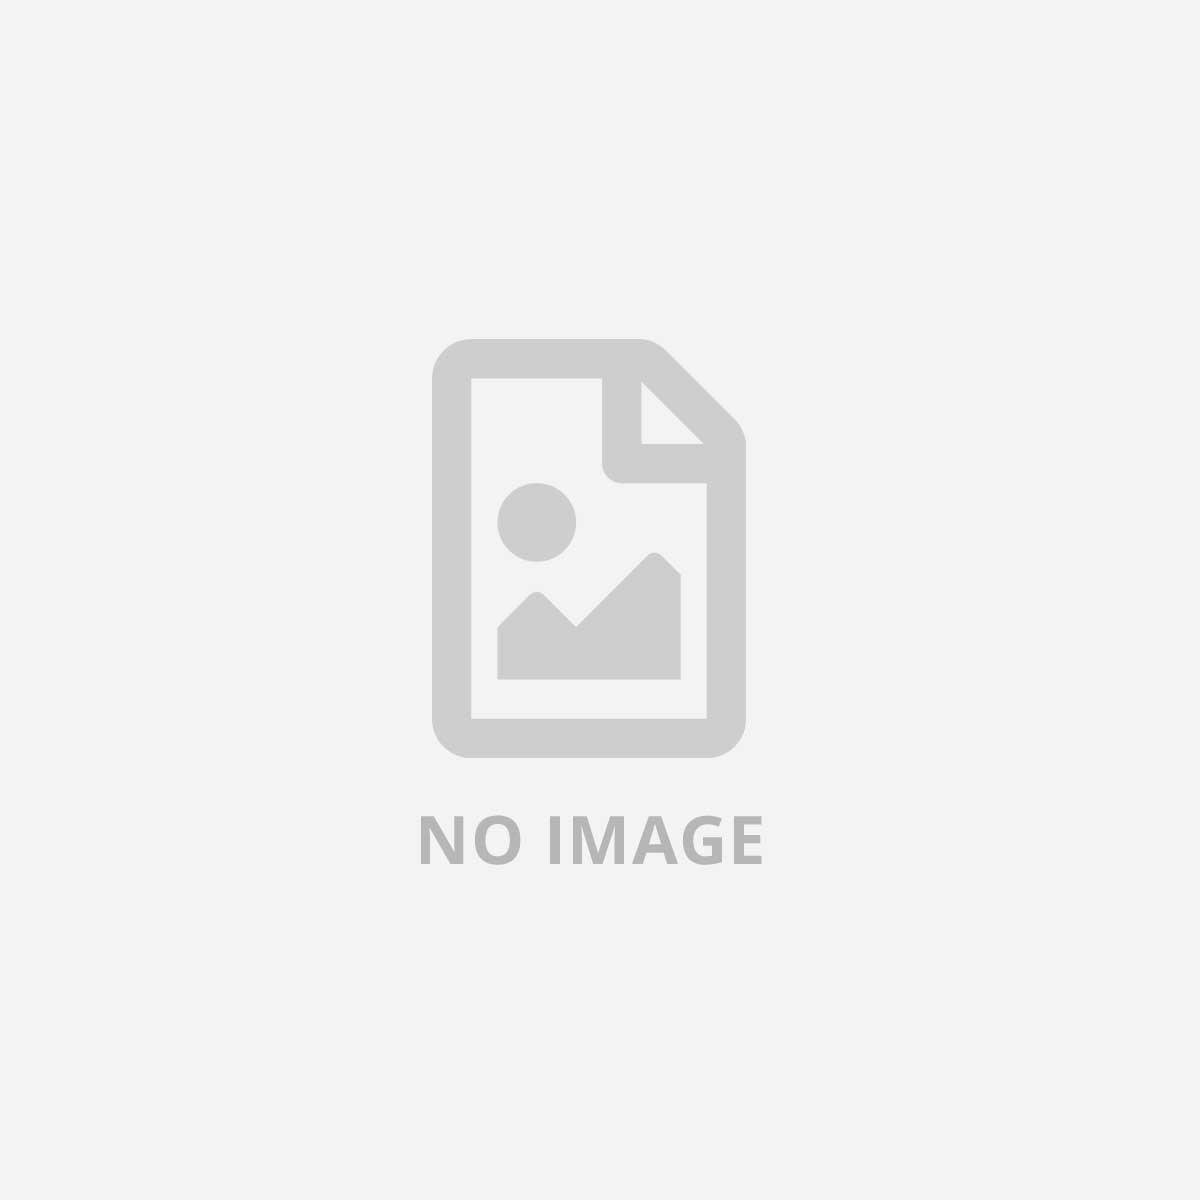 CORSAIR LL120 RGB WHITE FAN - 1X